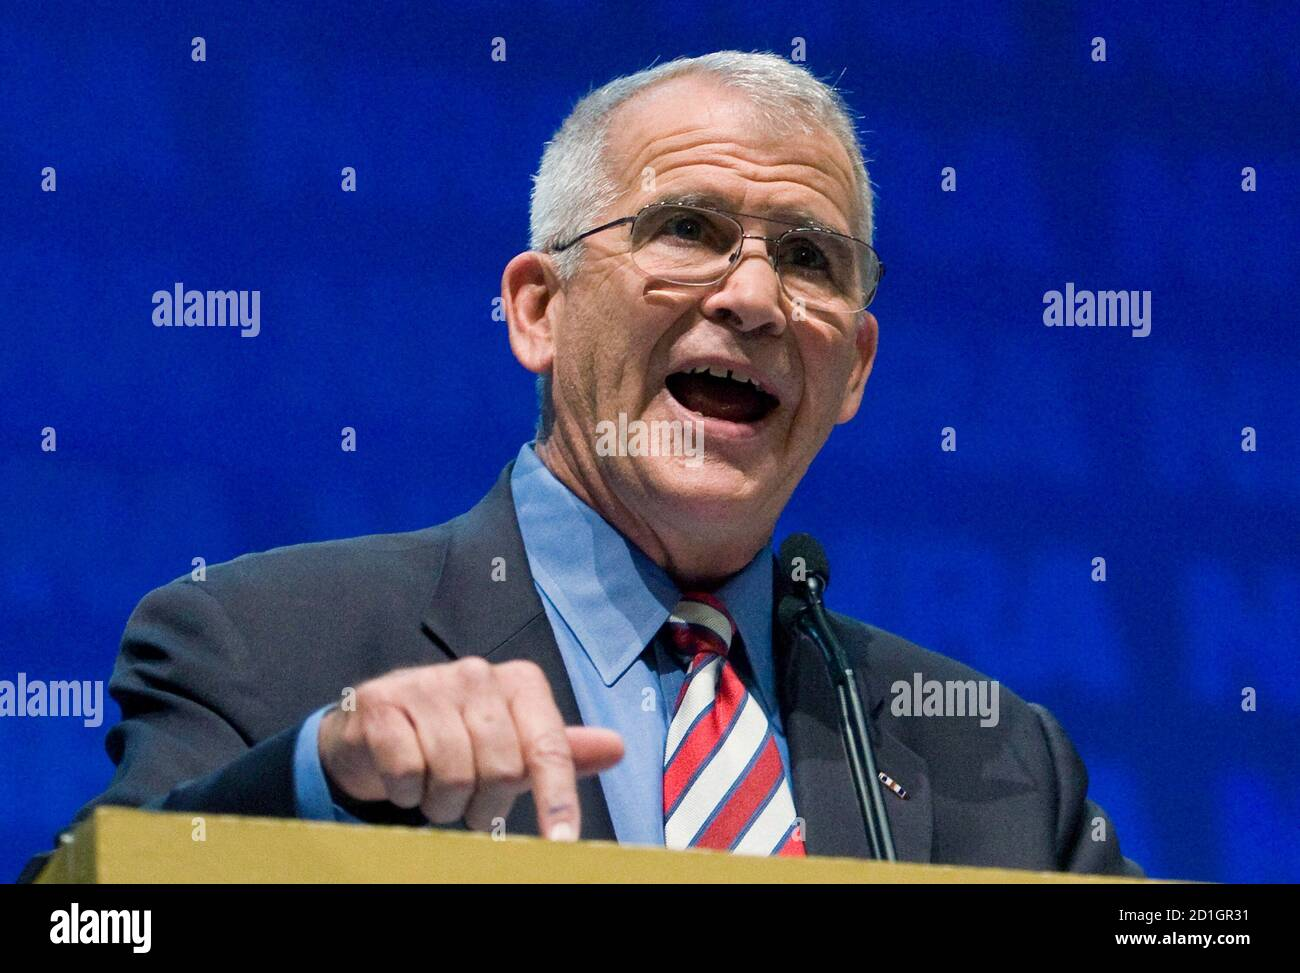 Retired U.S. Marine Corps Lt. Col. Oliver North speaks during the National Rifle Association's 139th annual meeting in Charlotte, North Carolina May 14, 2010. REUTERS/Chris Keane (UNITED STATES - Tags: POLITICS) Stock Photo